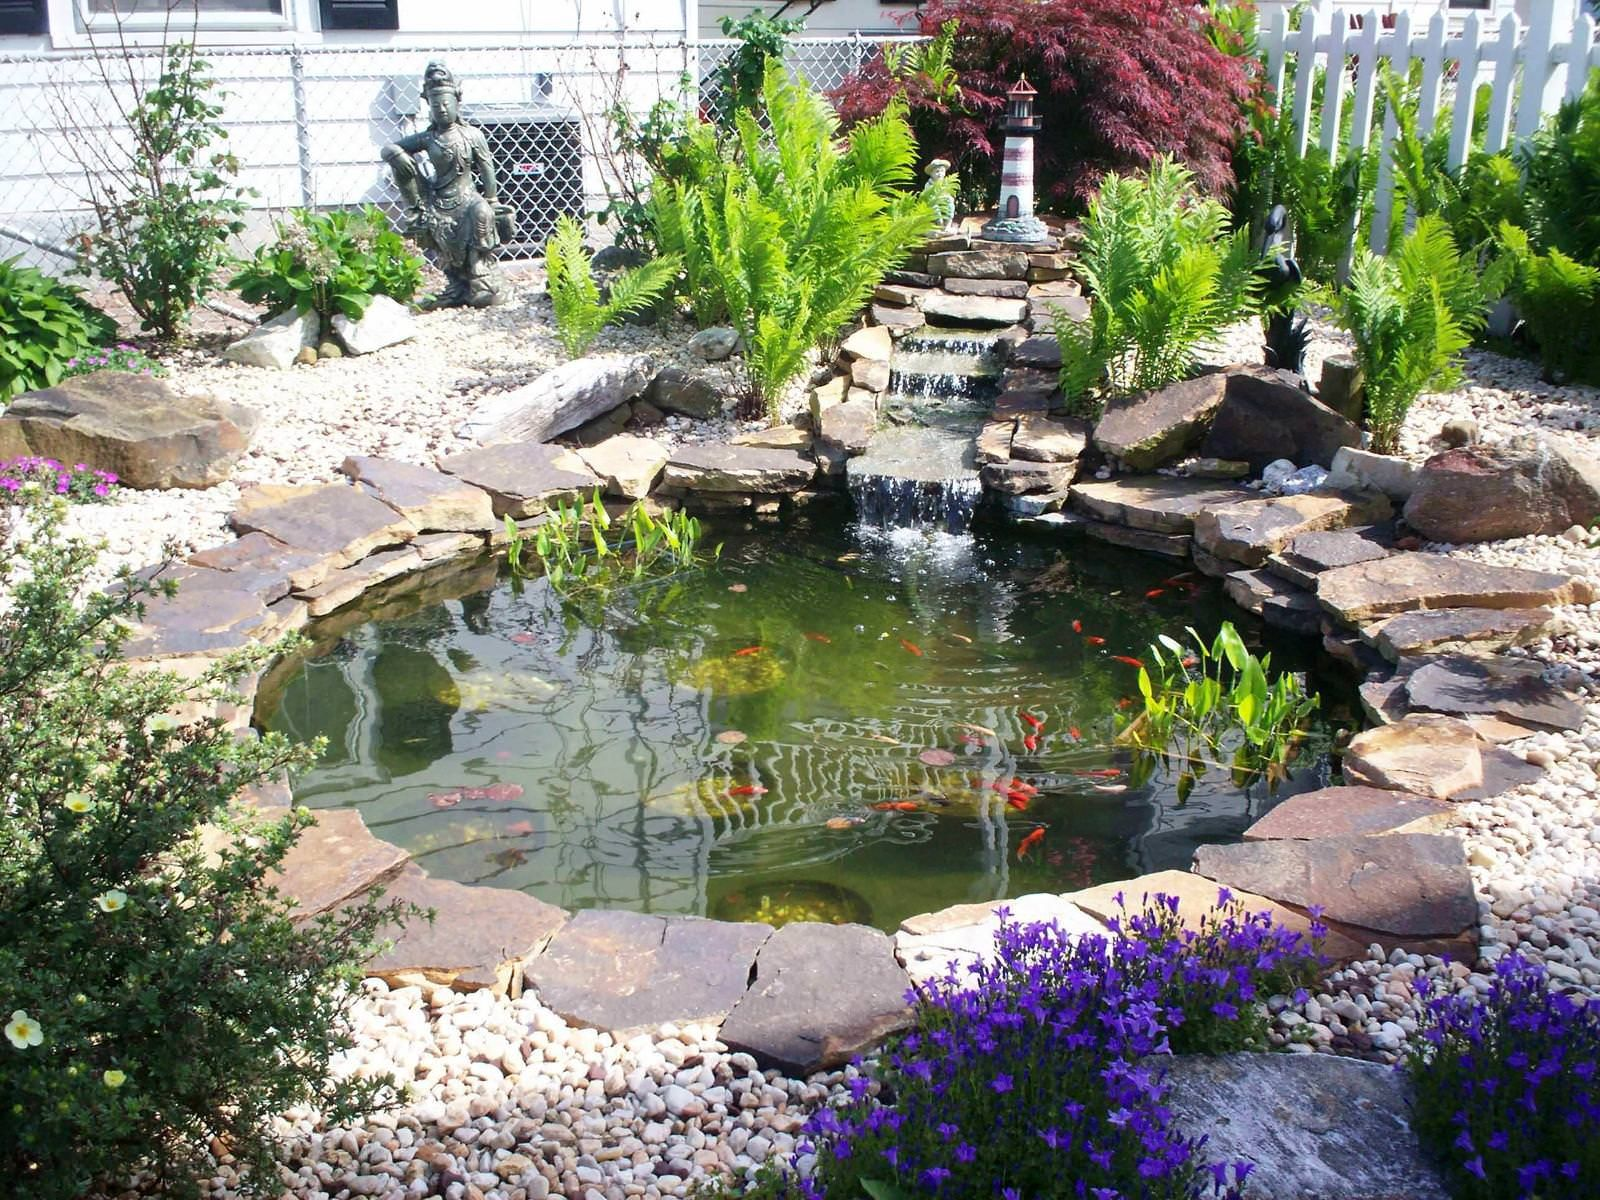 Small garden or backyard aquarium ideas practic ideas for Patio koi pond